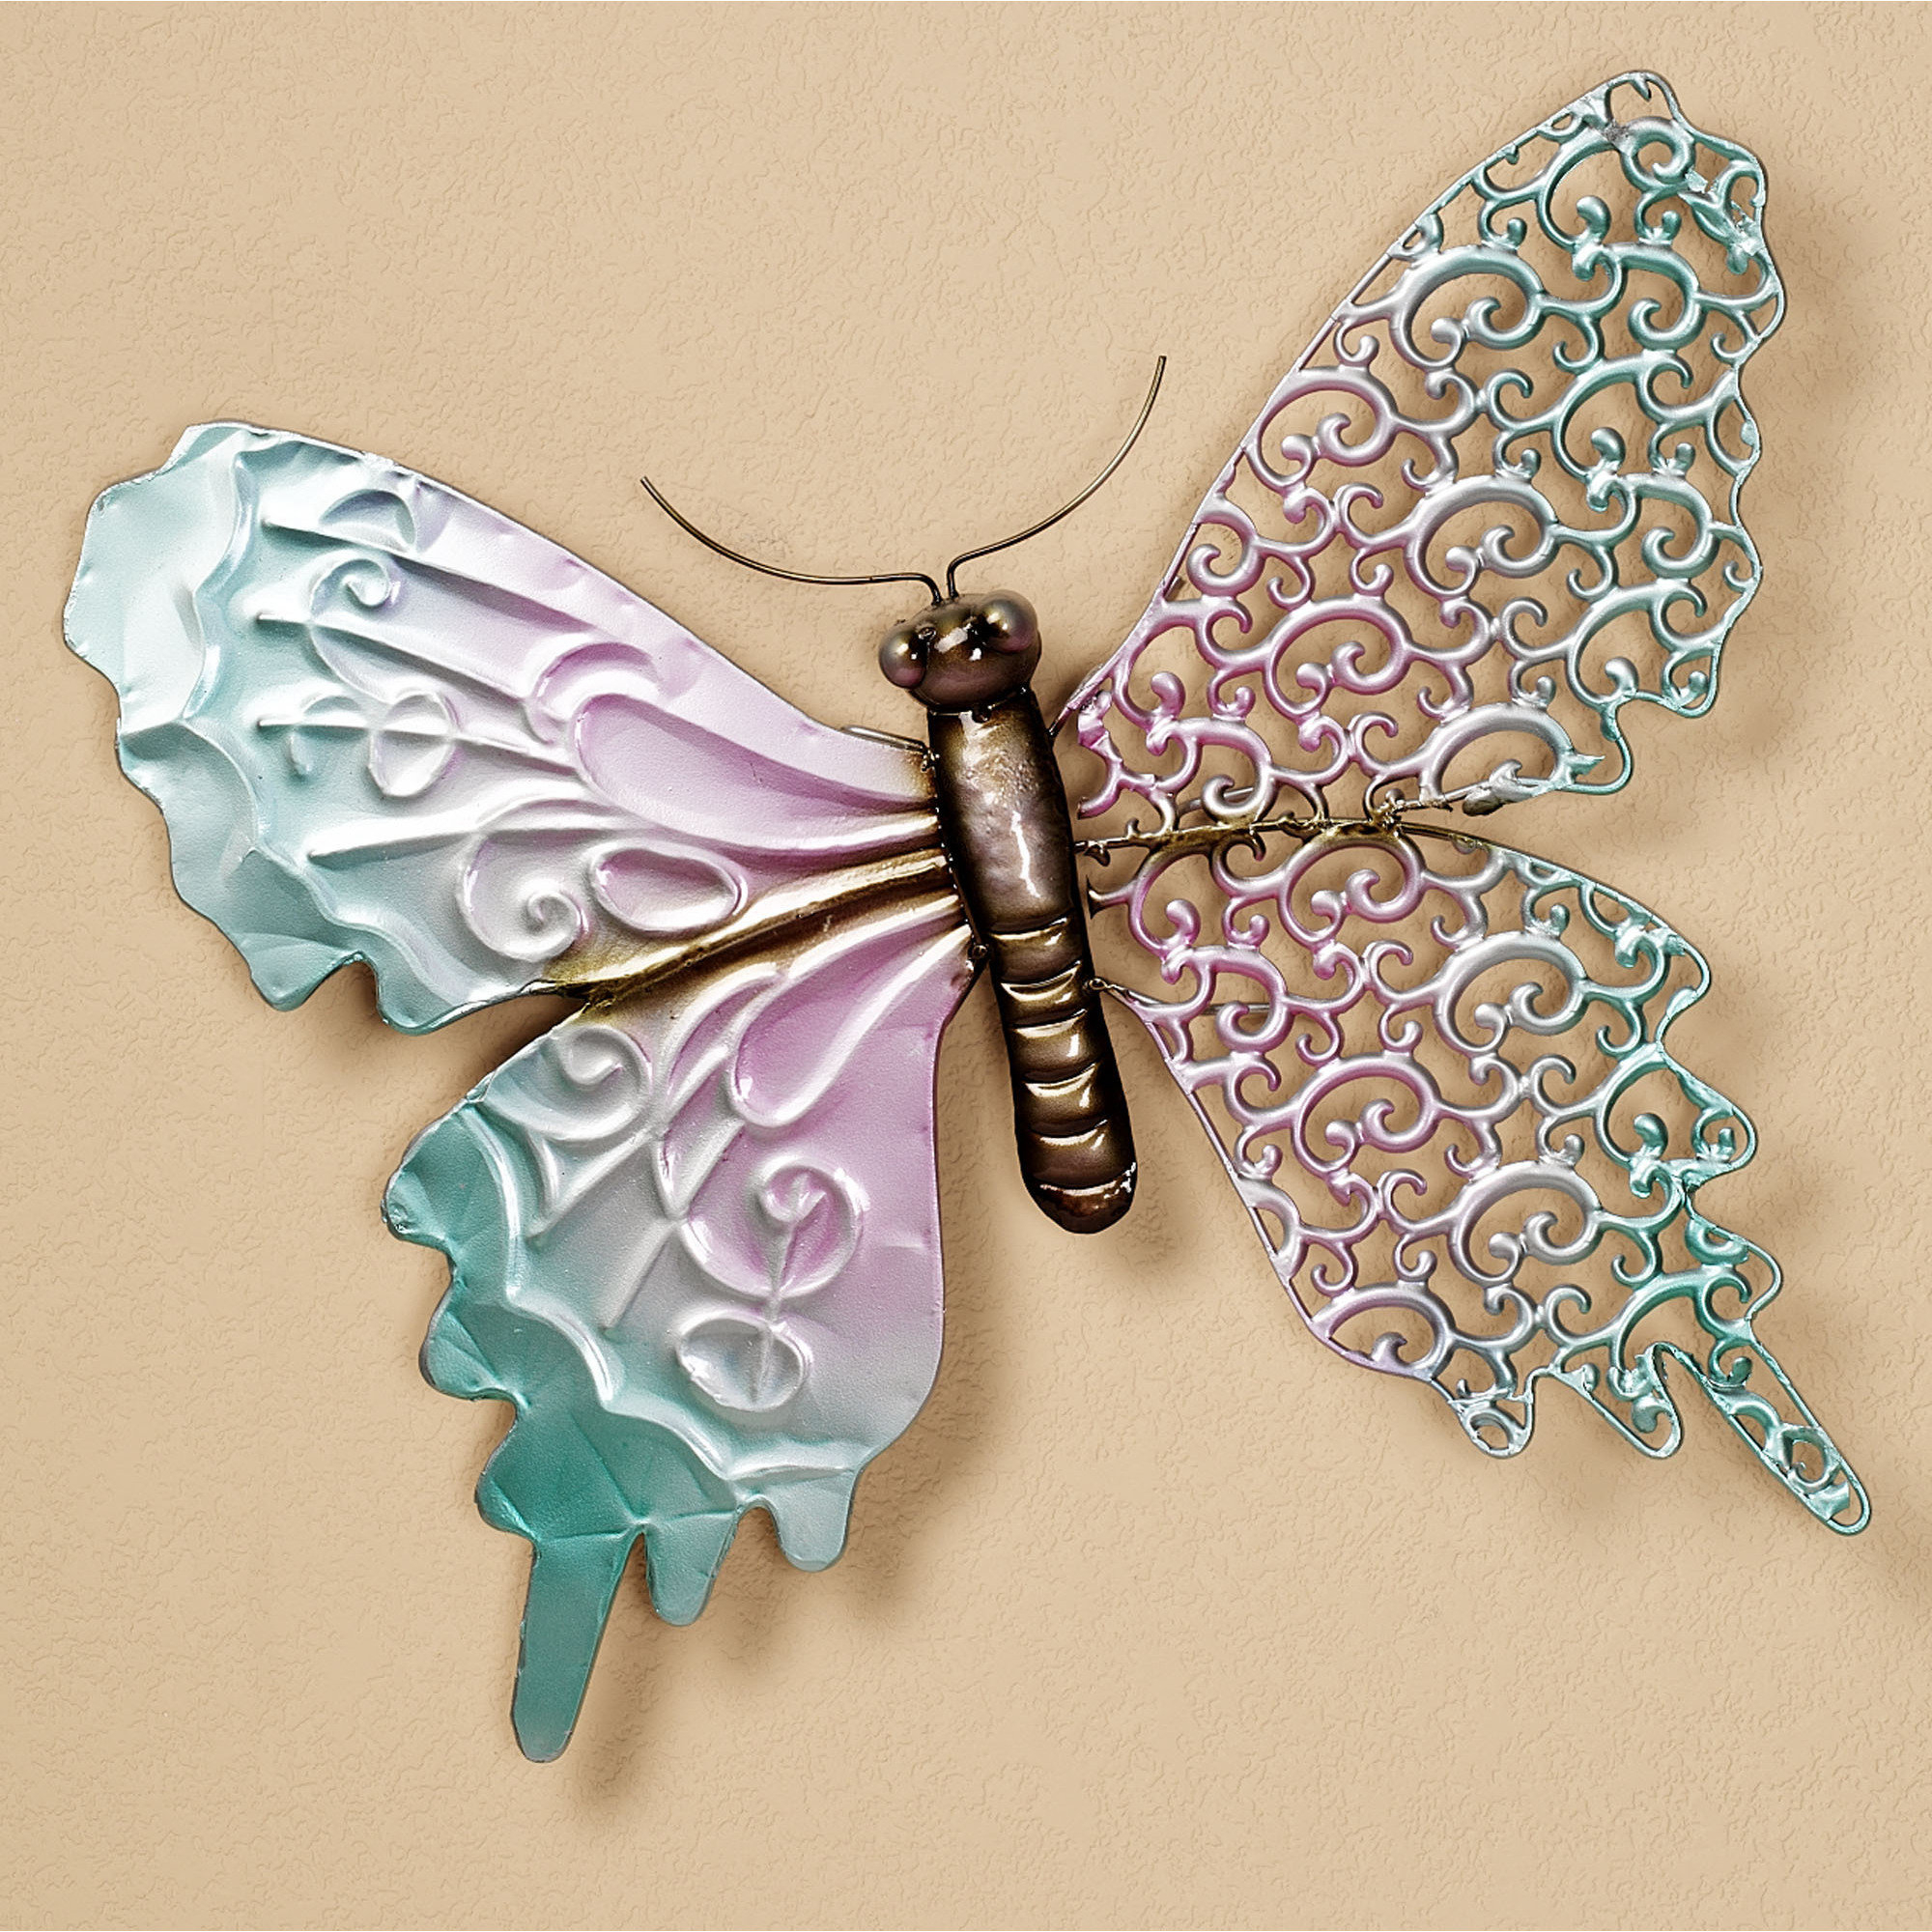 Ila Metal Butterfly Wall Decor Regarding Most Recent 25 Magnanimous Butterfly Wall Decor That Gives You Pleasure (View 4 of 20)